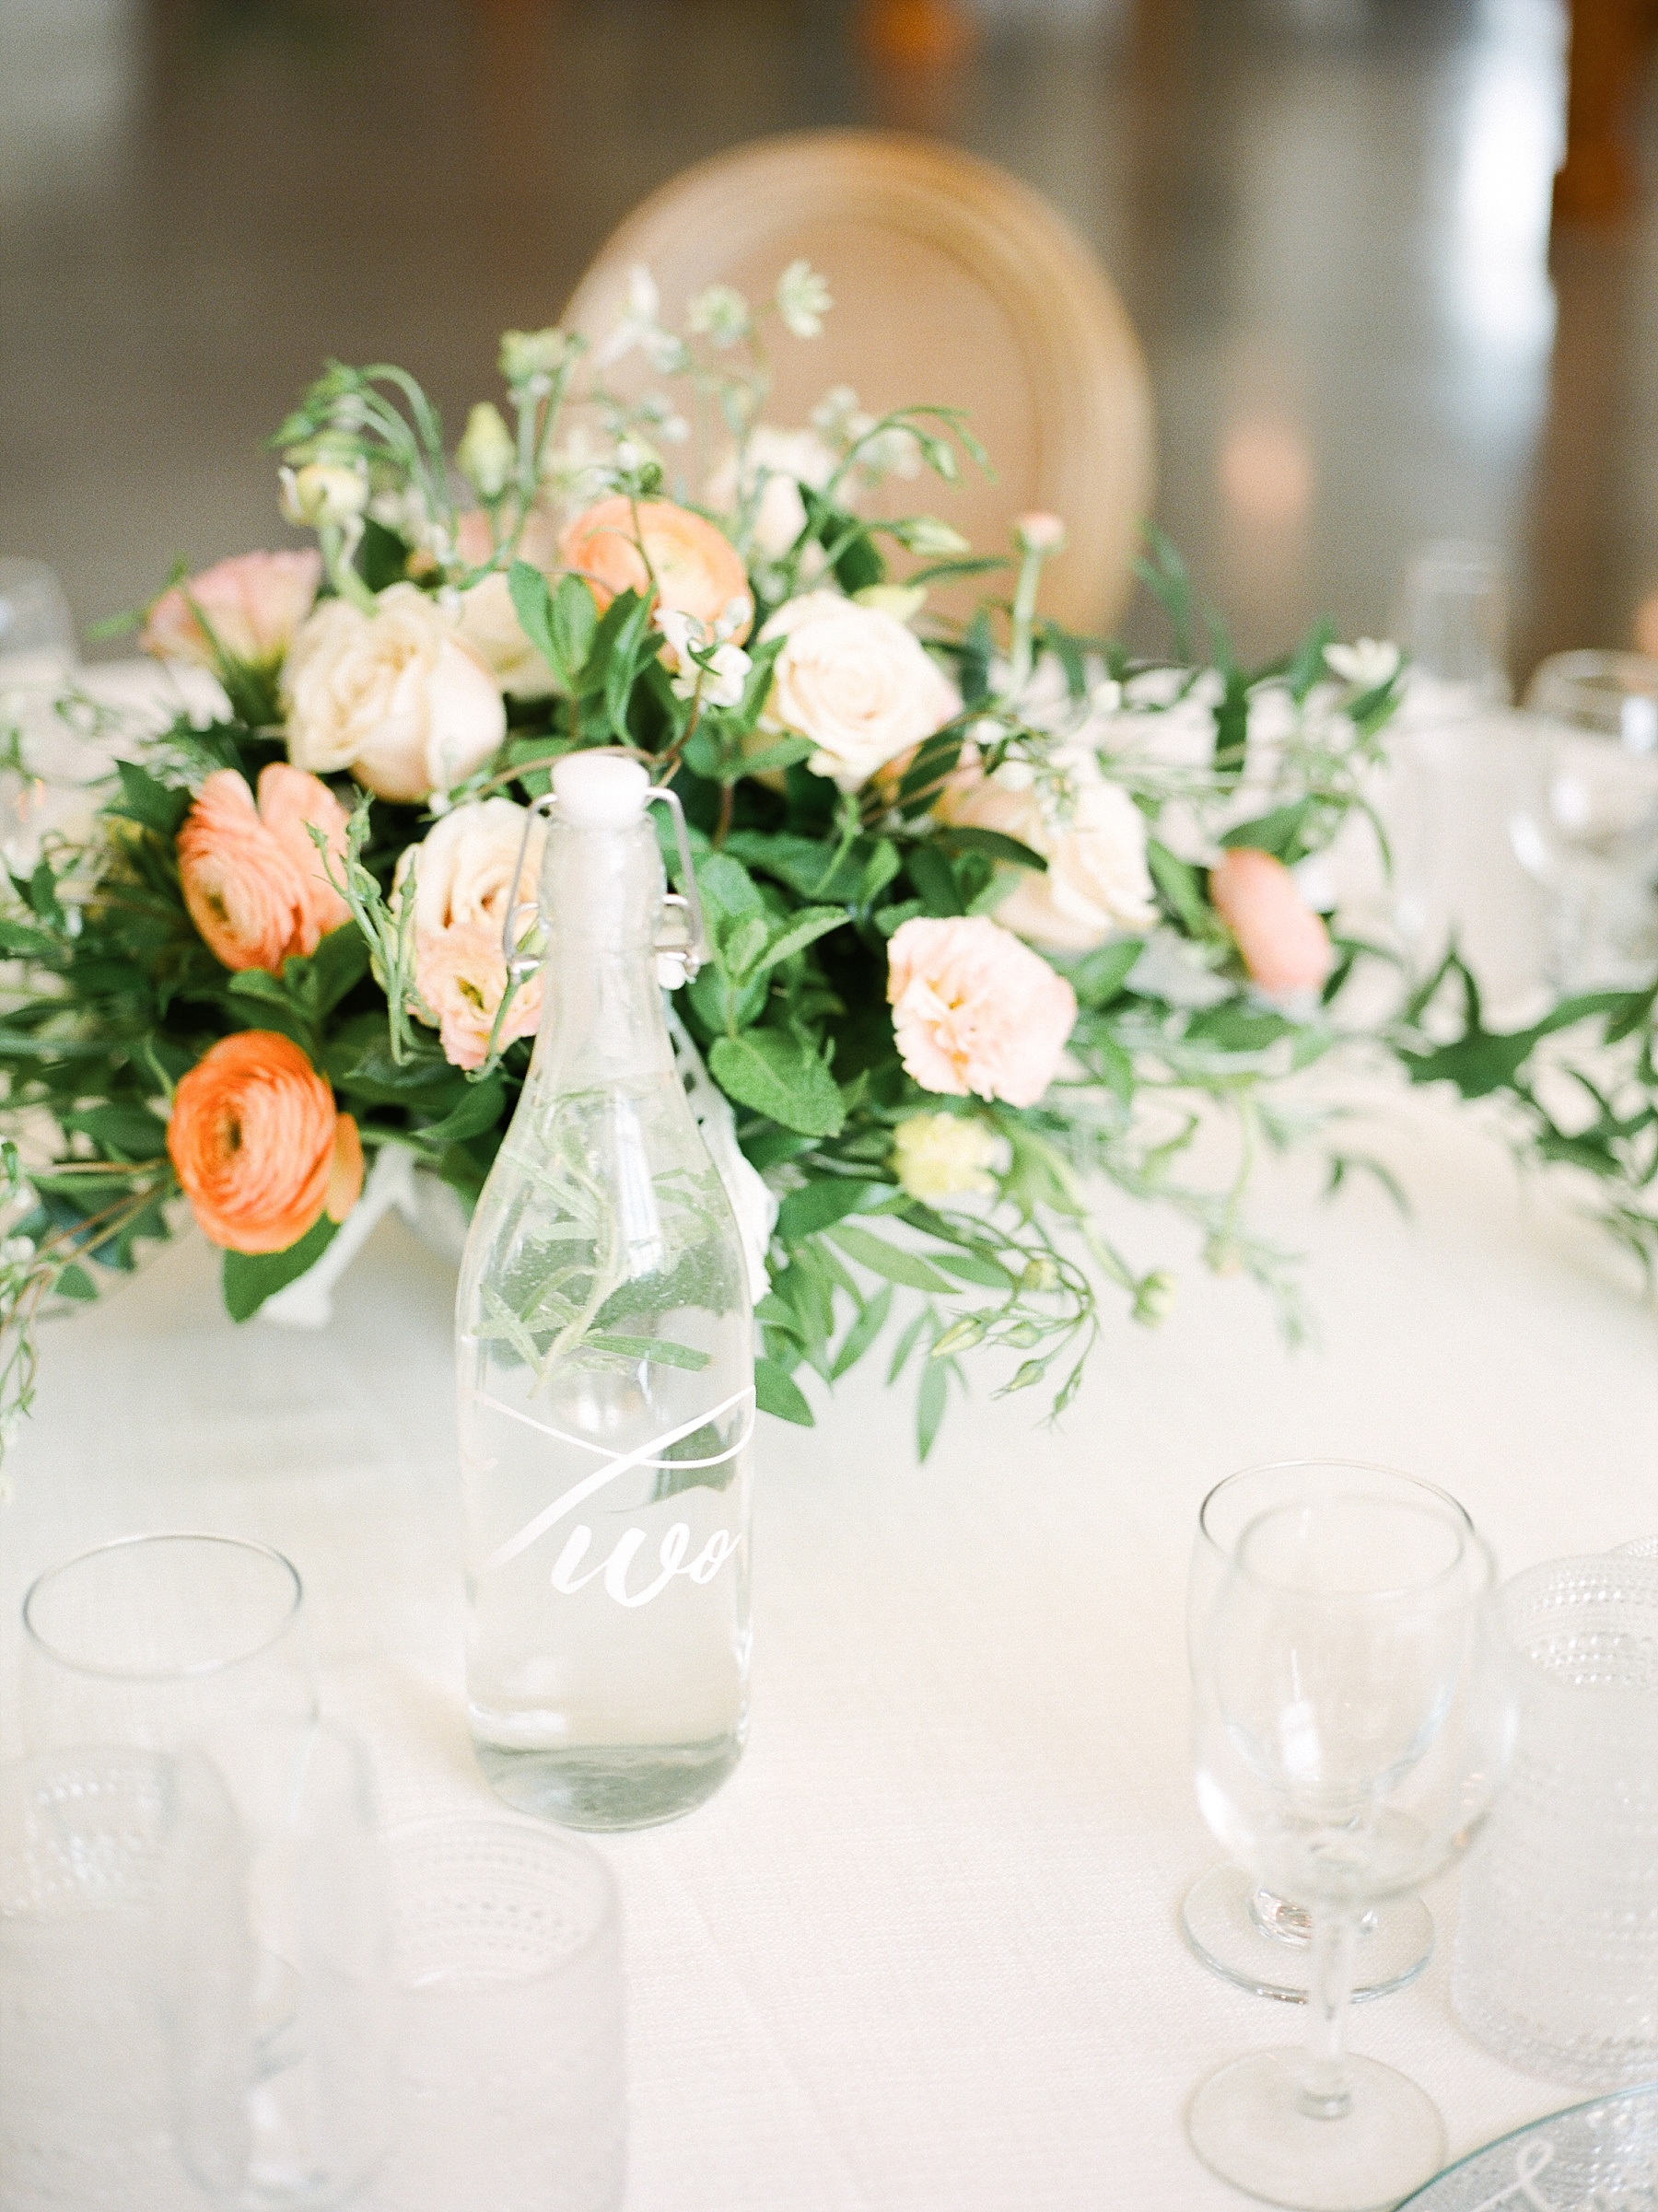 Textural Organic Wedding in All White Venue by Kelsi Kliethermes Wedding Photographer - Missouri, Midwest, and Destinations_0088.jpg